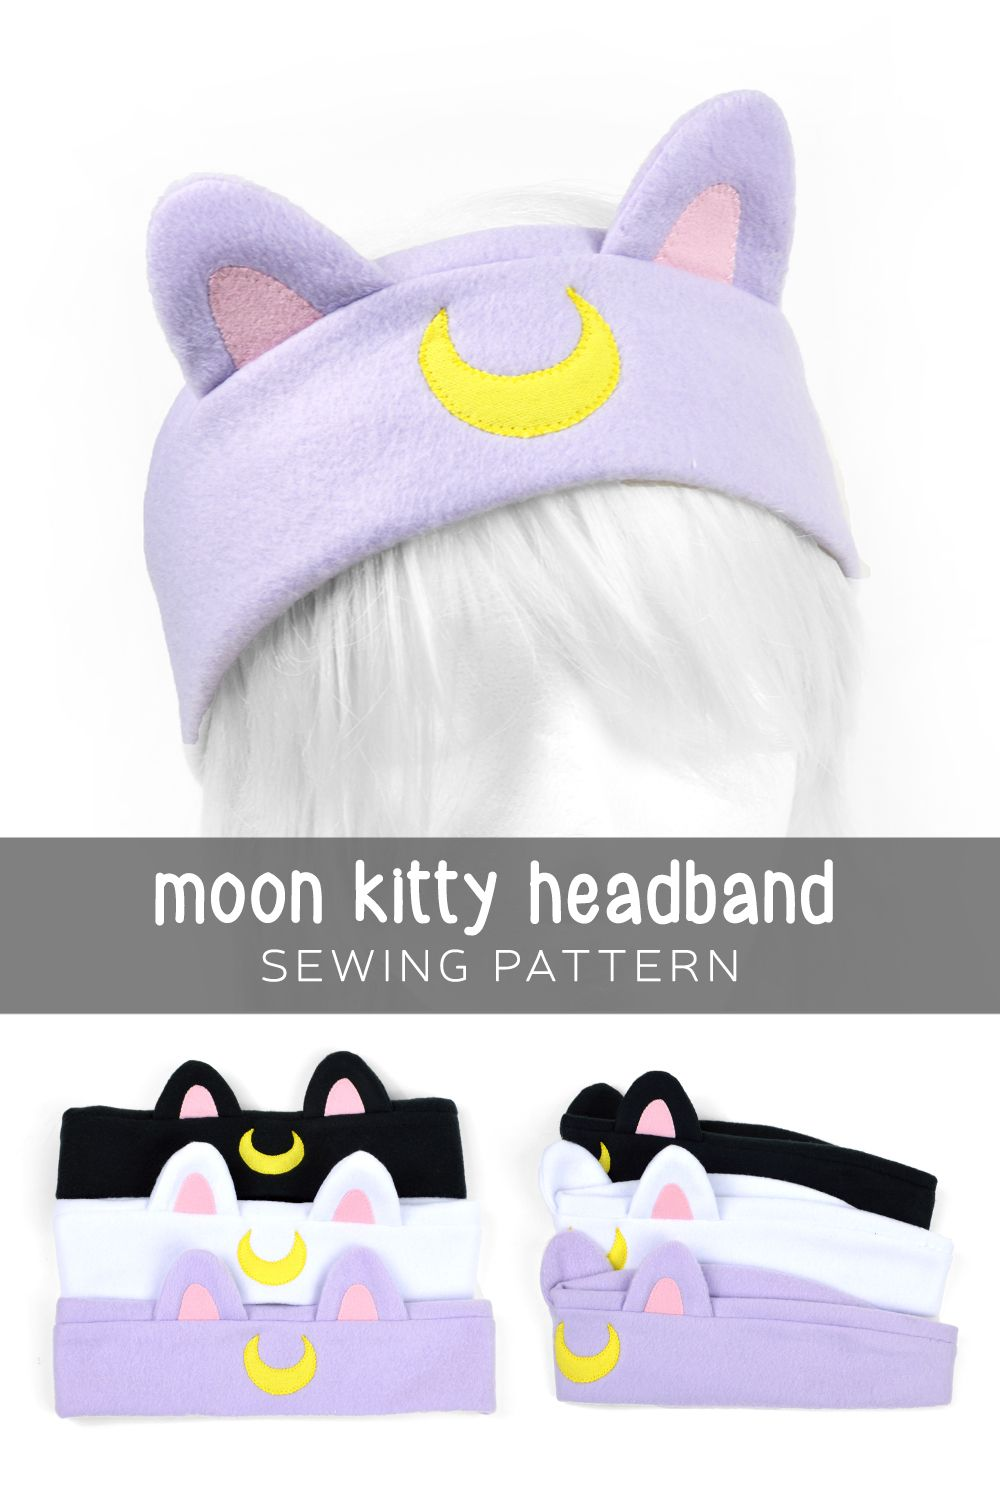 Moon kitty headband pattern for free sewing patterns moon kitty headband pattern for free jeuxipadfo Gallery